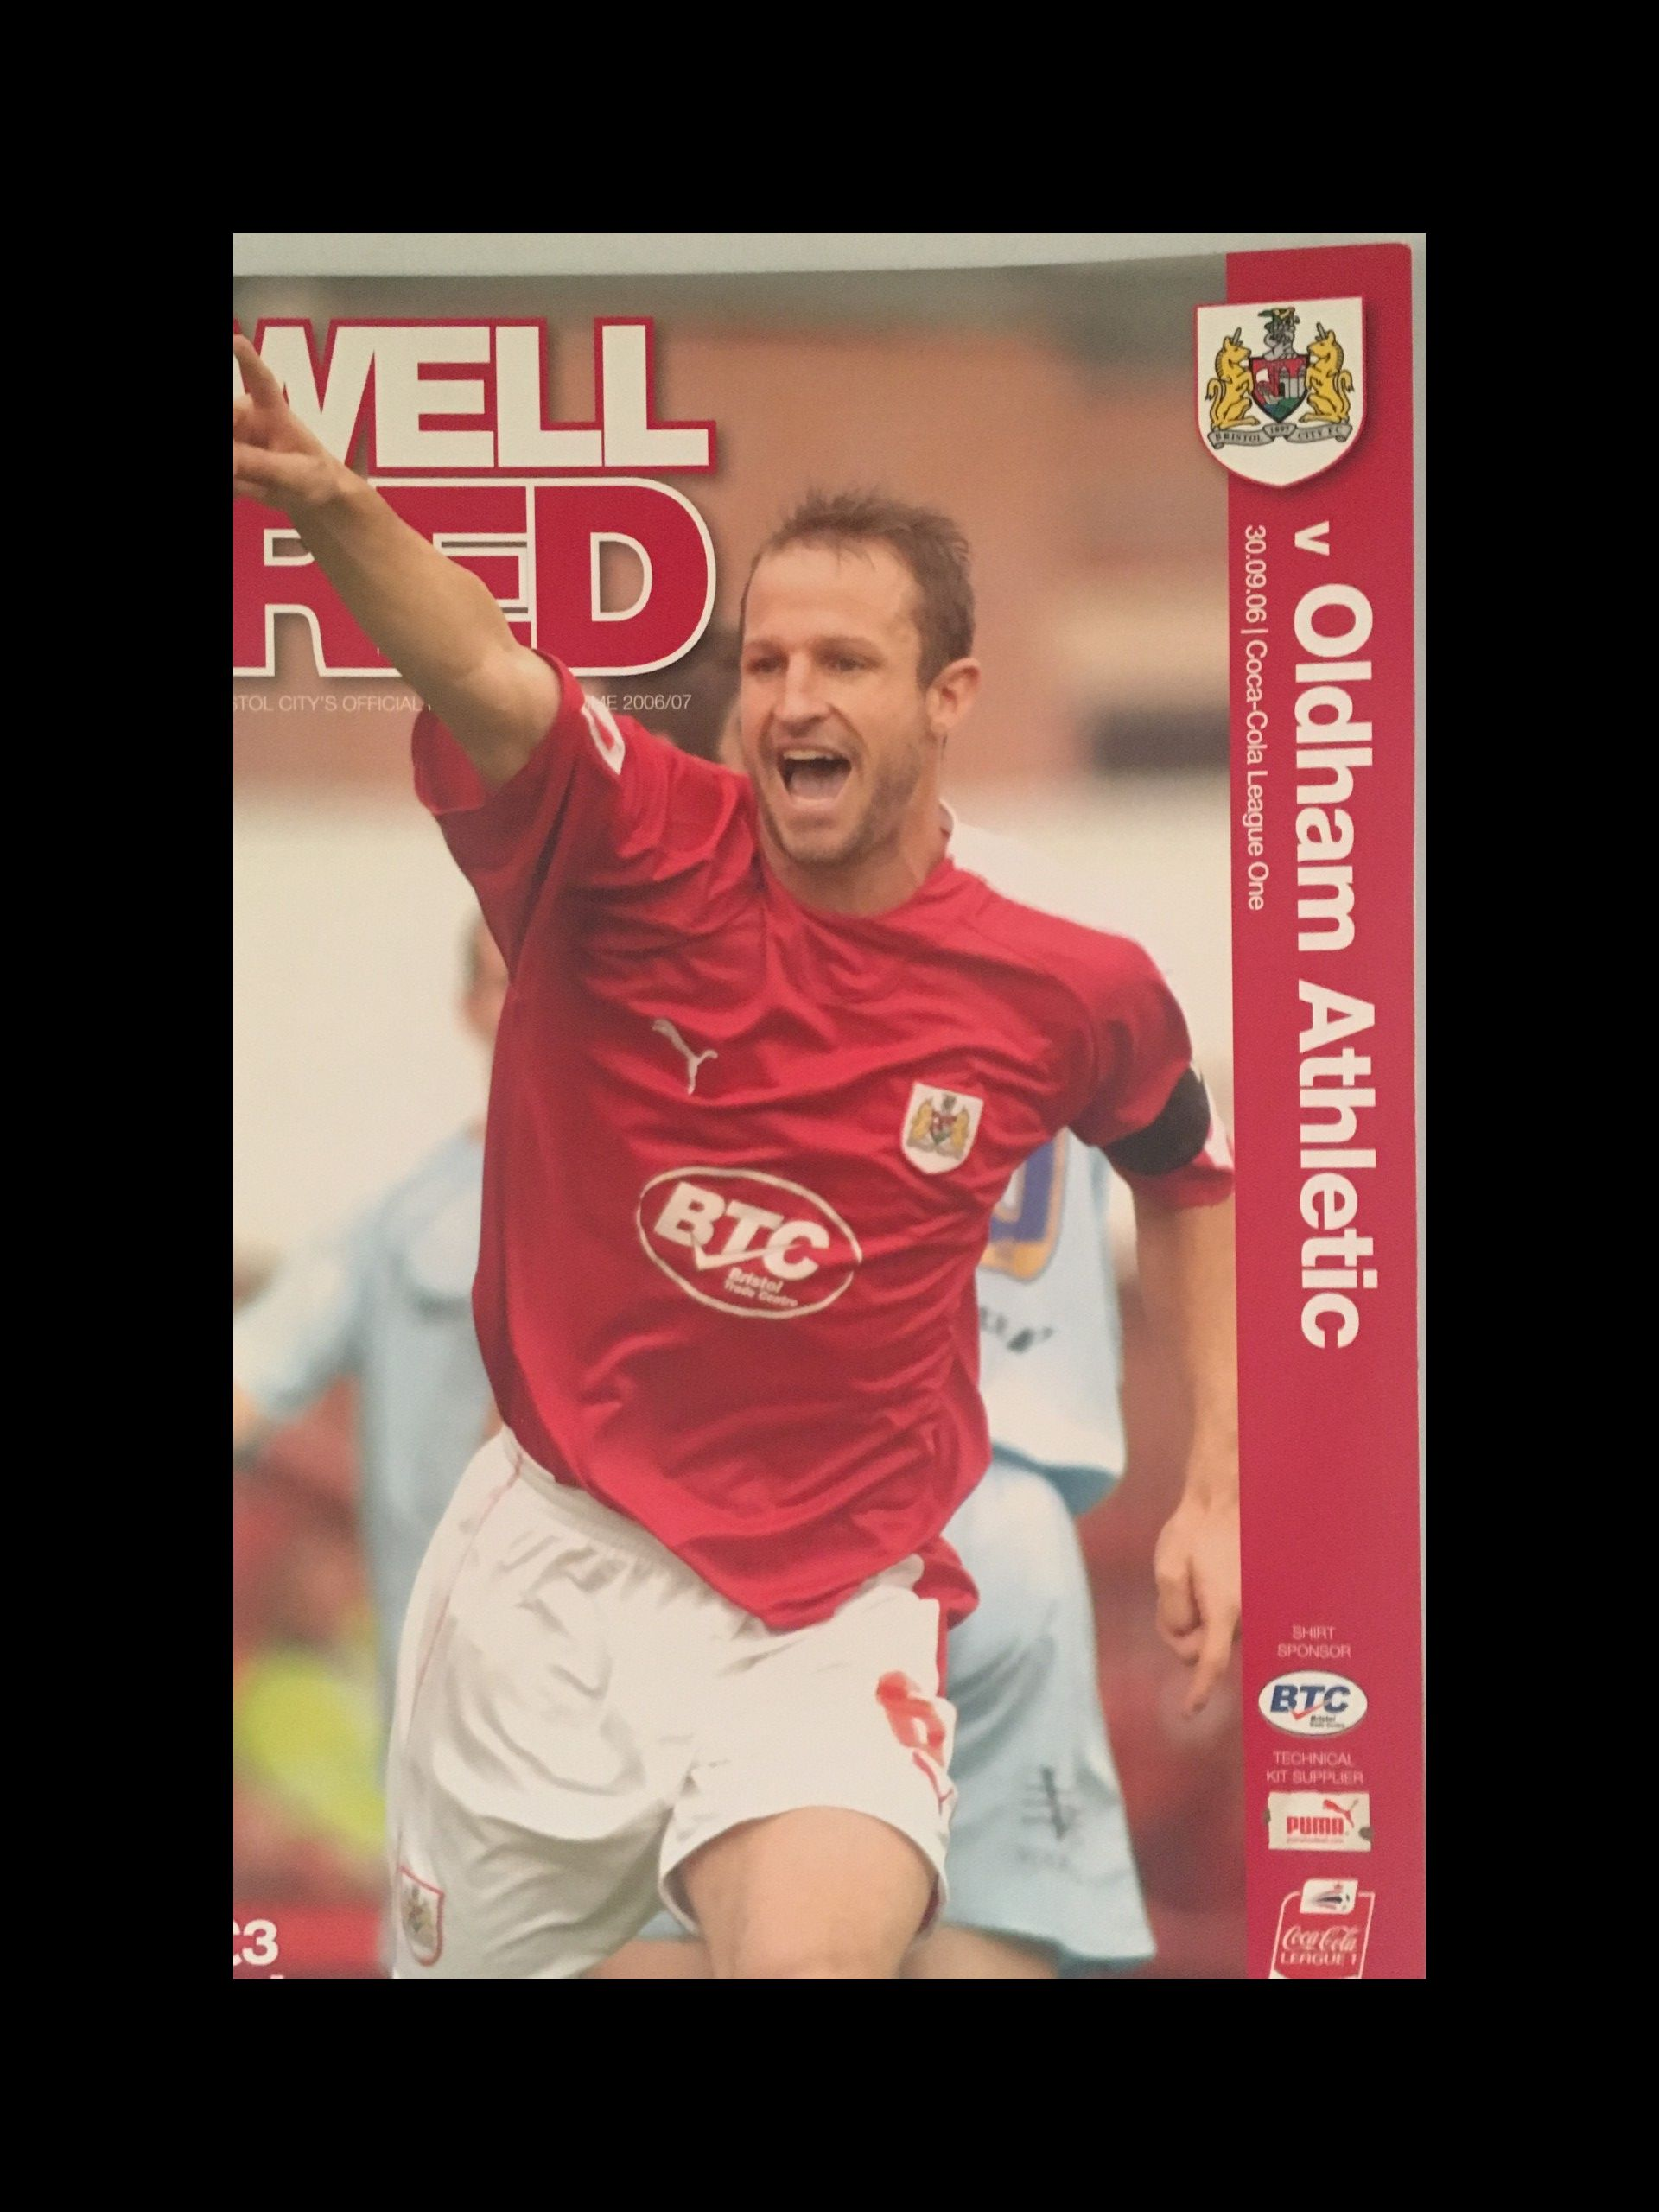 Bristol City v Oldham Athletic 30-09-2006 Programme